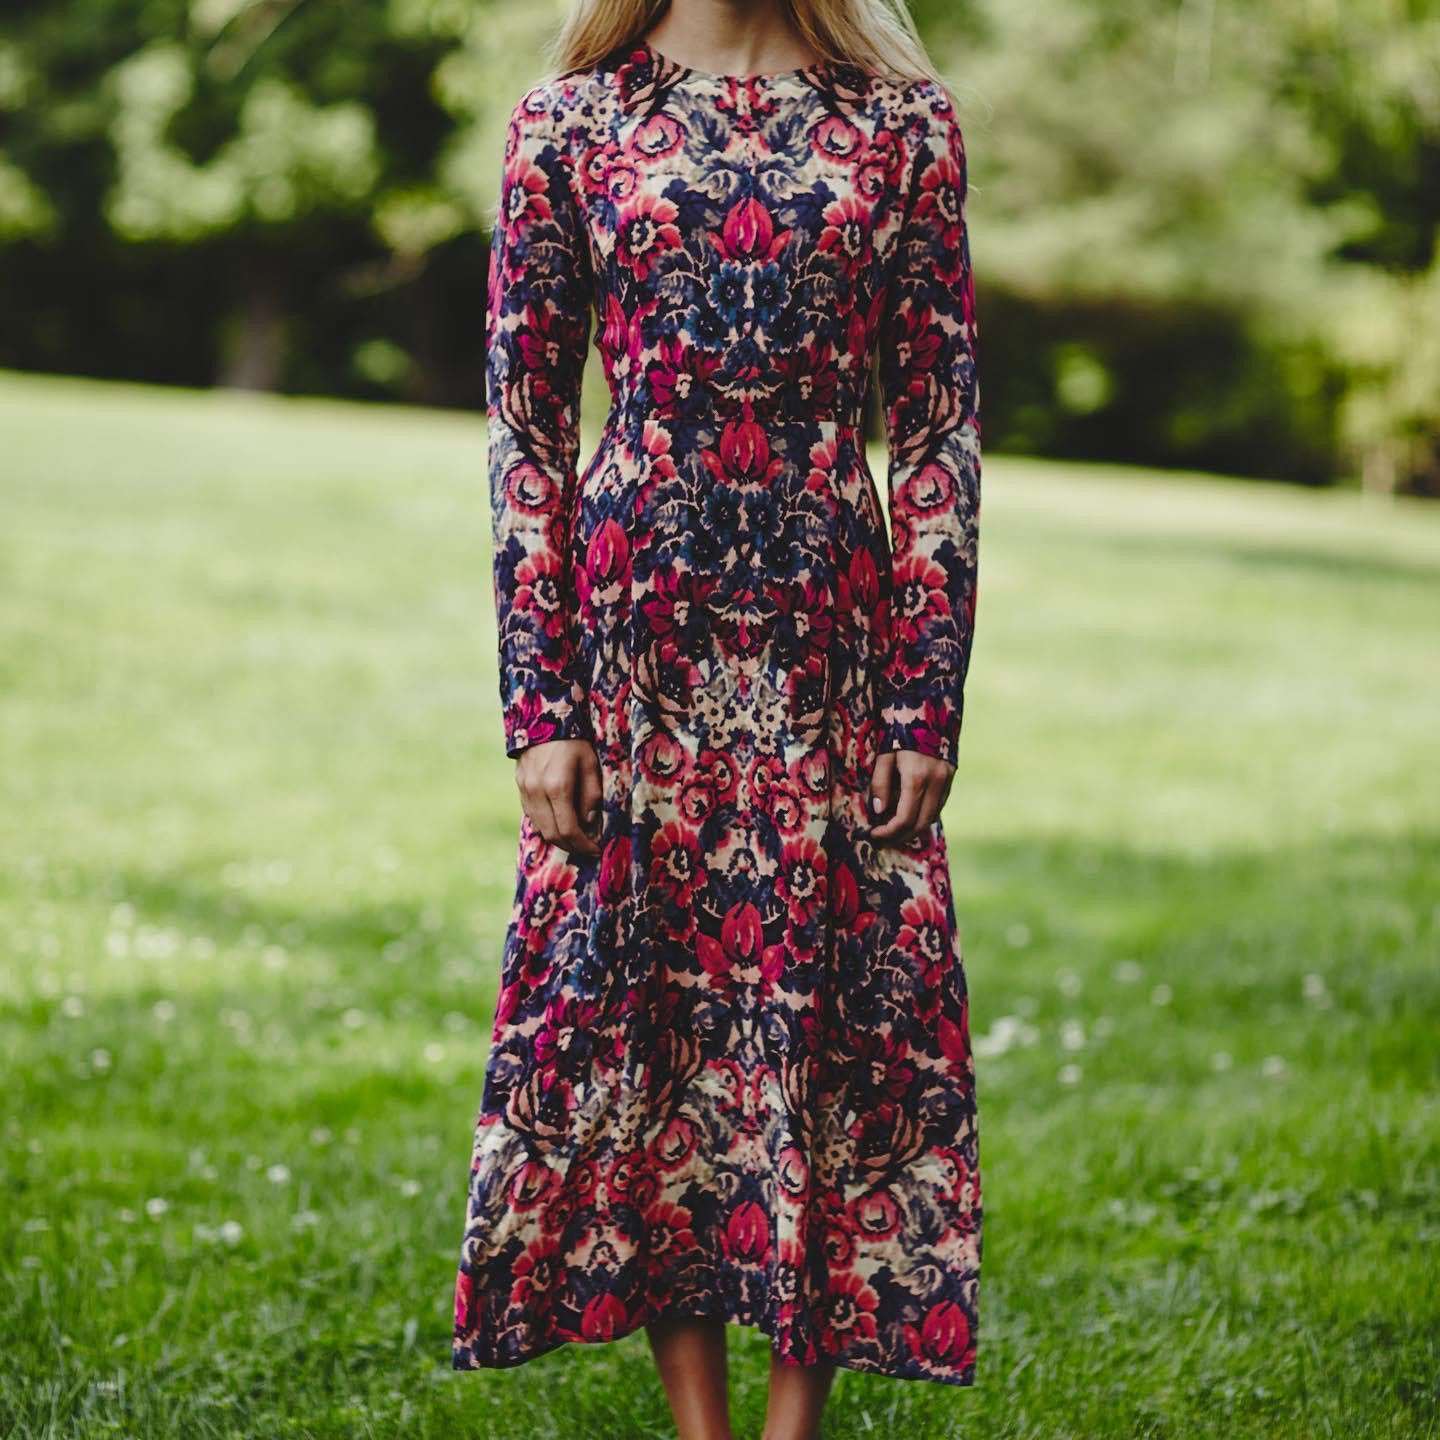 Adelaide Dress by Sam and Lavi from Preserve - Blake Lively's Preserve